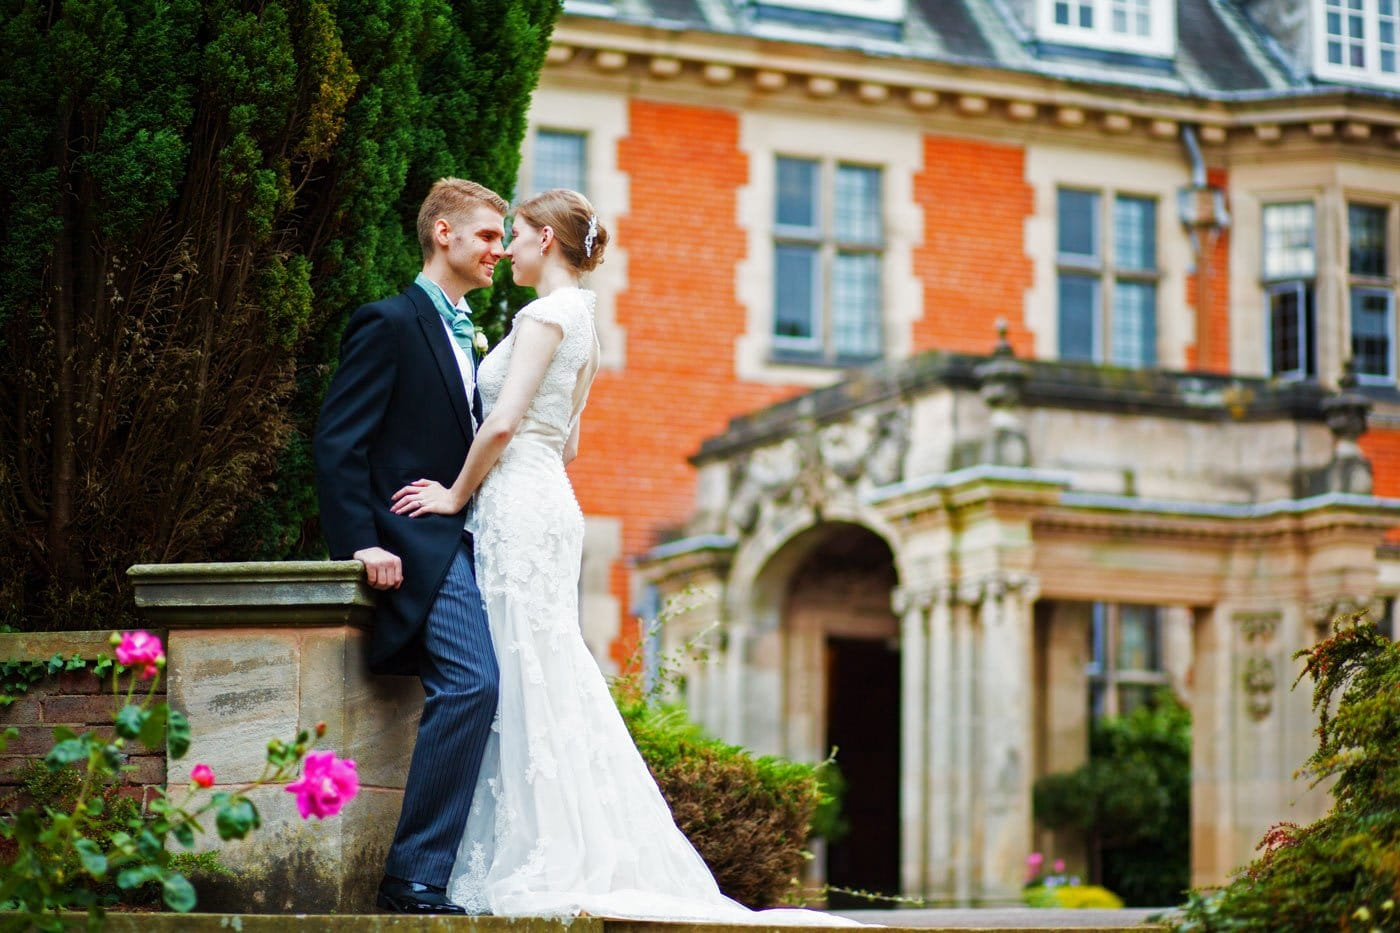 Wedding-Photography-of-Victoria-and-Kate-at-Dunchurch-Park-Hall